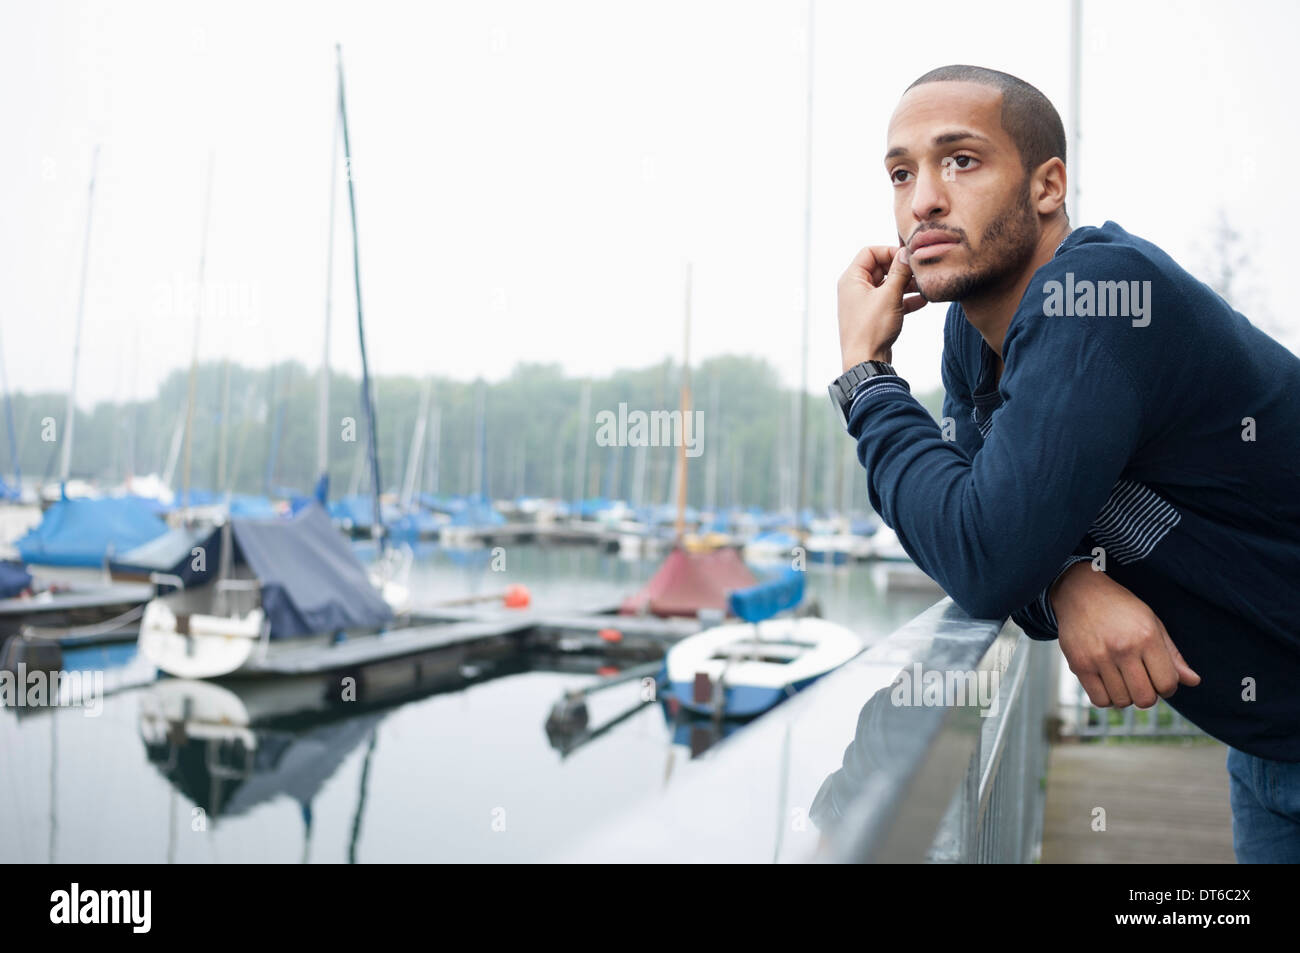 Portrait of young man in marina - Stock Image